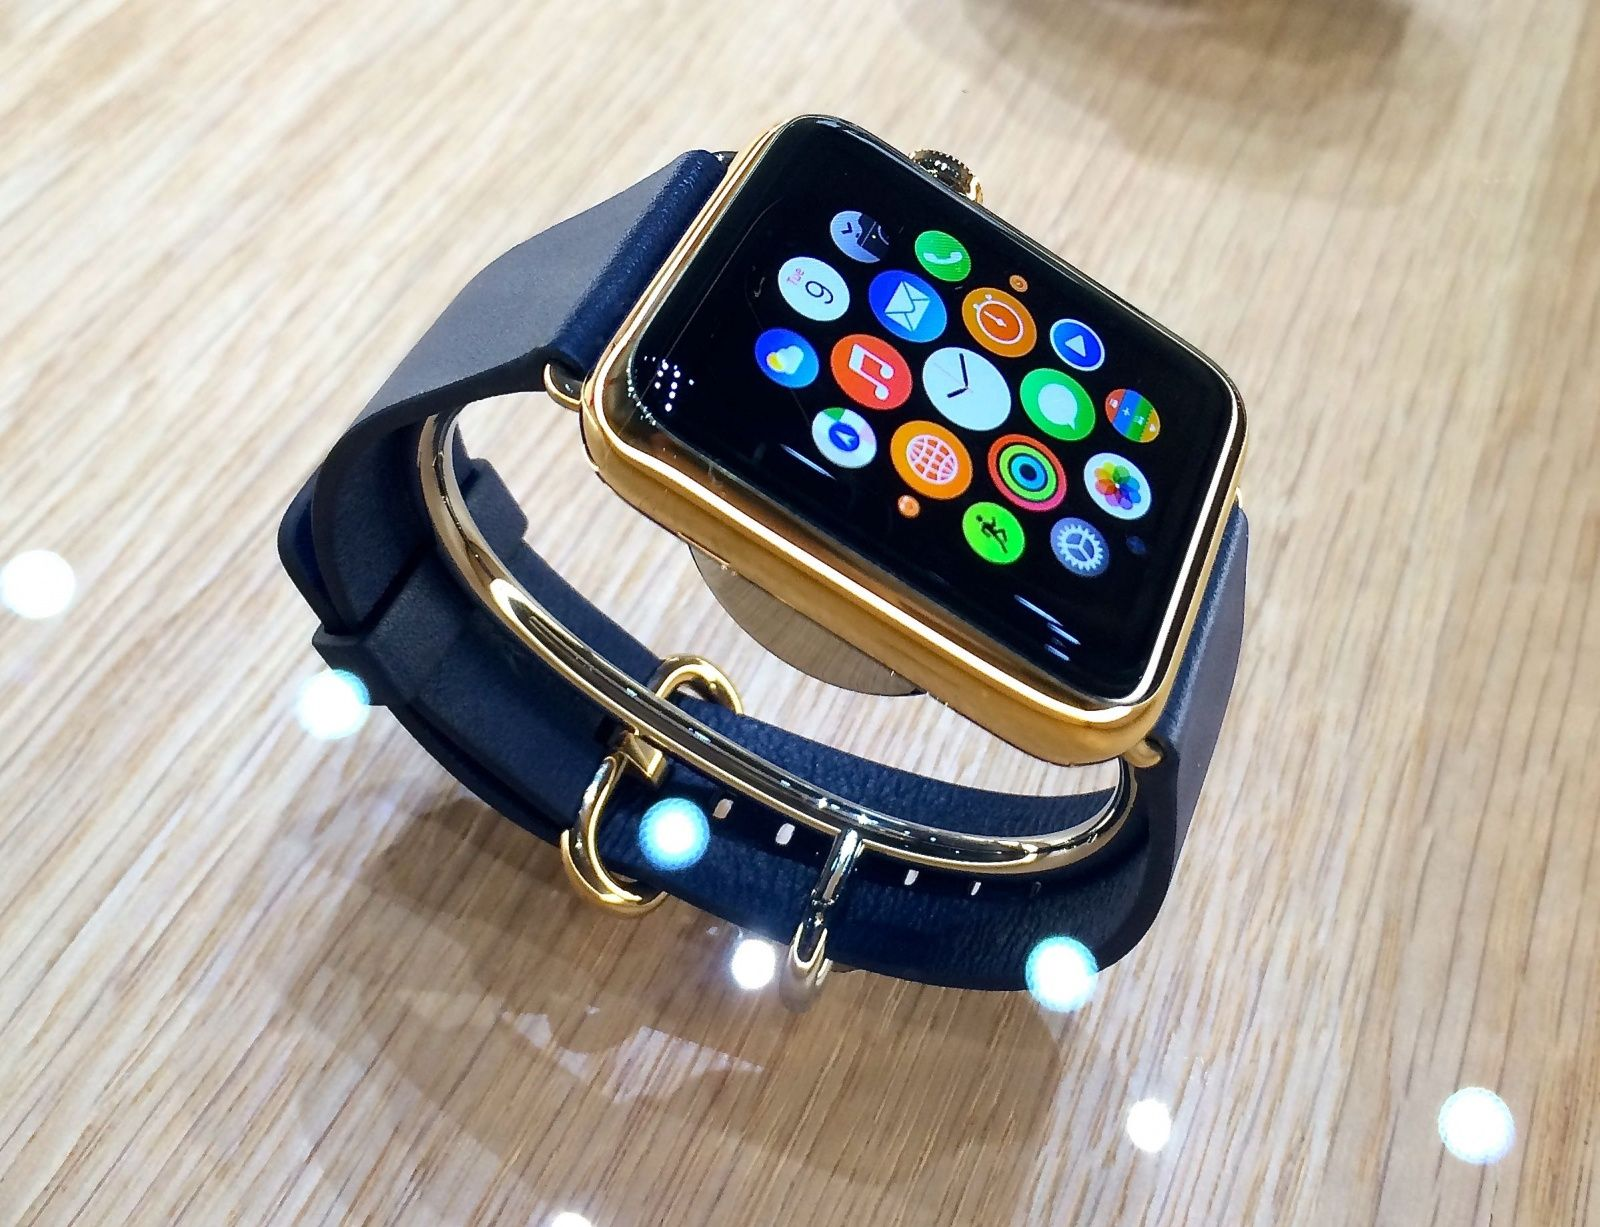 apple-watch-price-leak-00